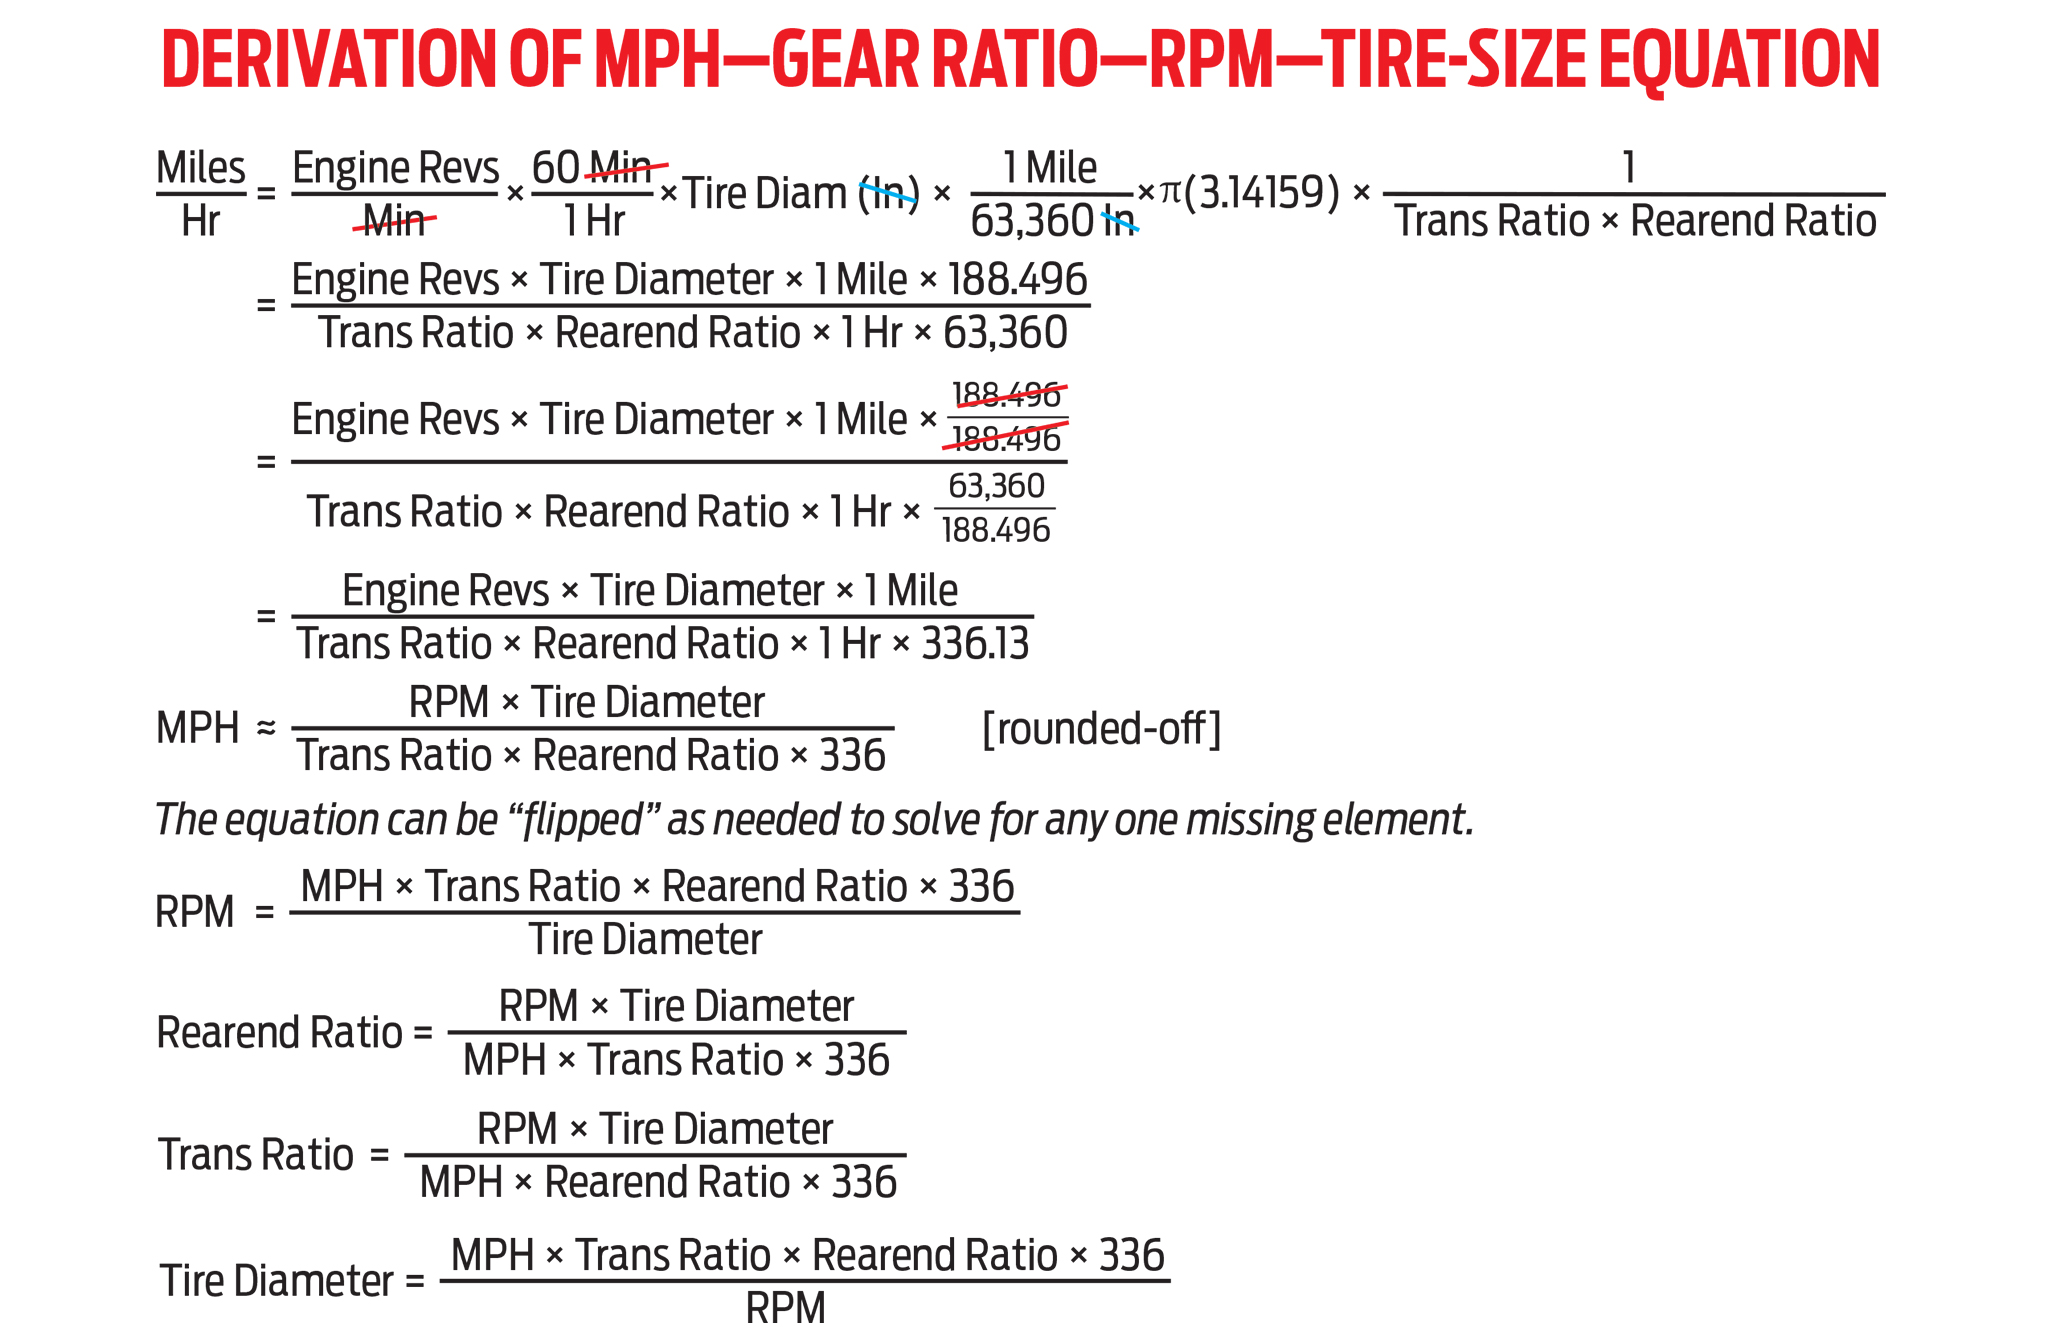 Where Does The 336 Come From In The Speed Rpm Gear Ratio Tire Size Formula